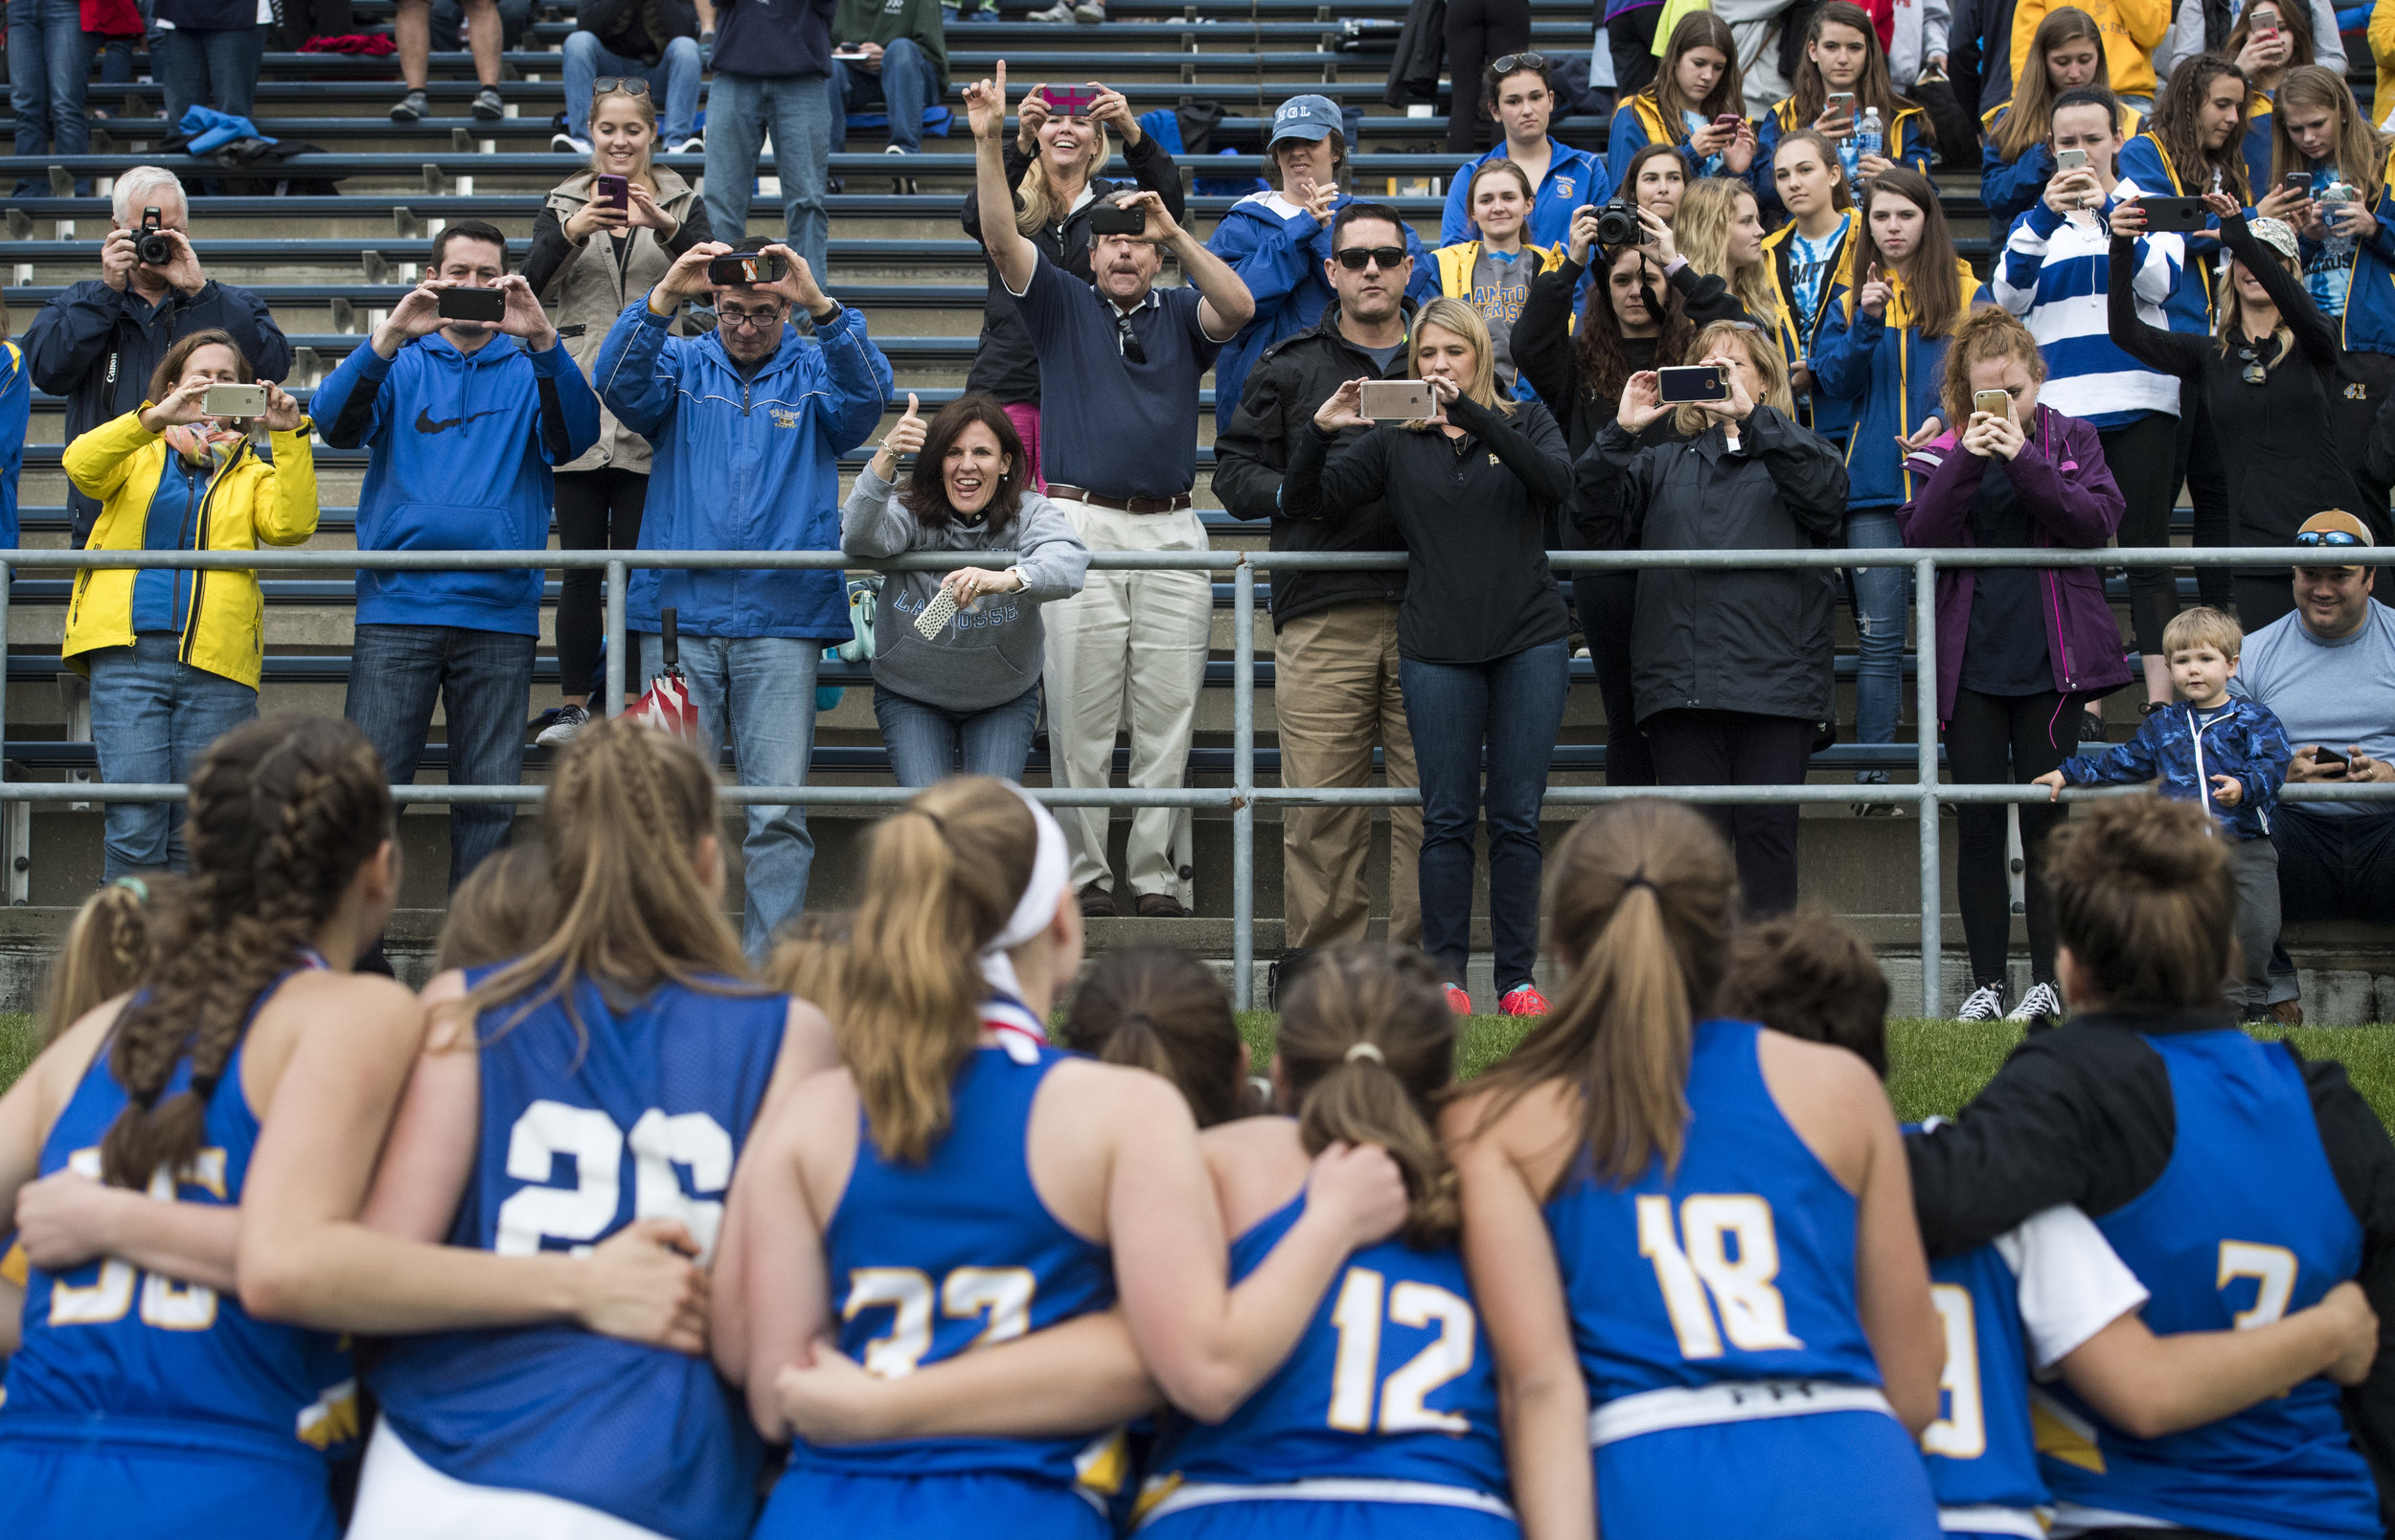 Hampton girls lacrosse halt their celebrating to pose for photos after beating Oakland Catholic during the WPIAL class AA girls lacrosse championship on Thursday, May 25, 2017 at Robert Morris University. Hampton beat Oakland Catholic 15-5. (Steph Chambers/Post-Gazette)